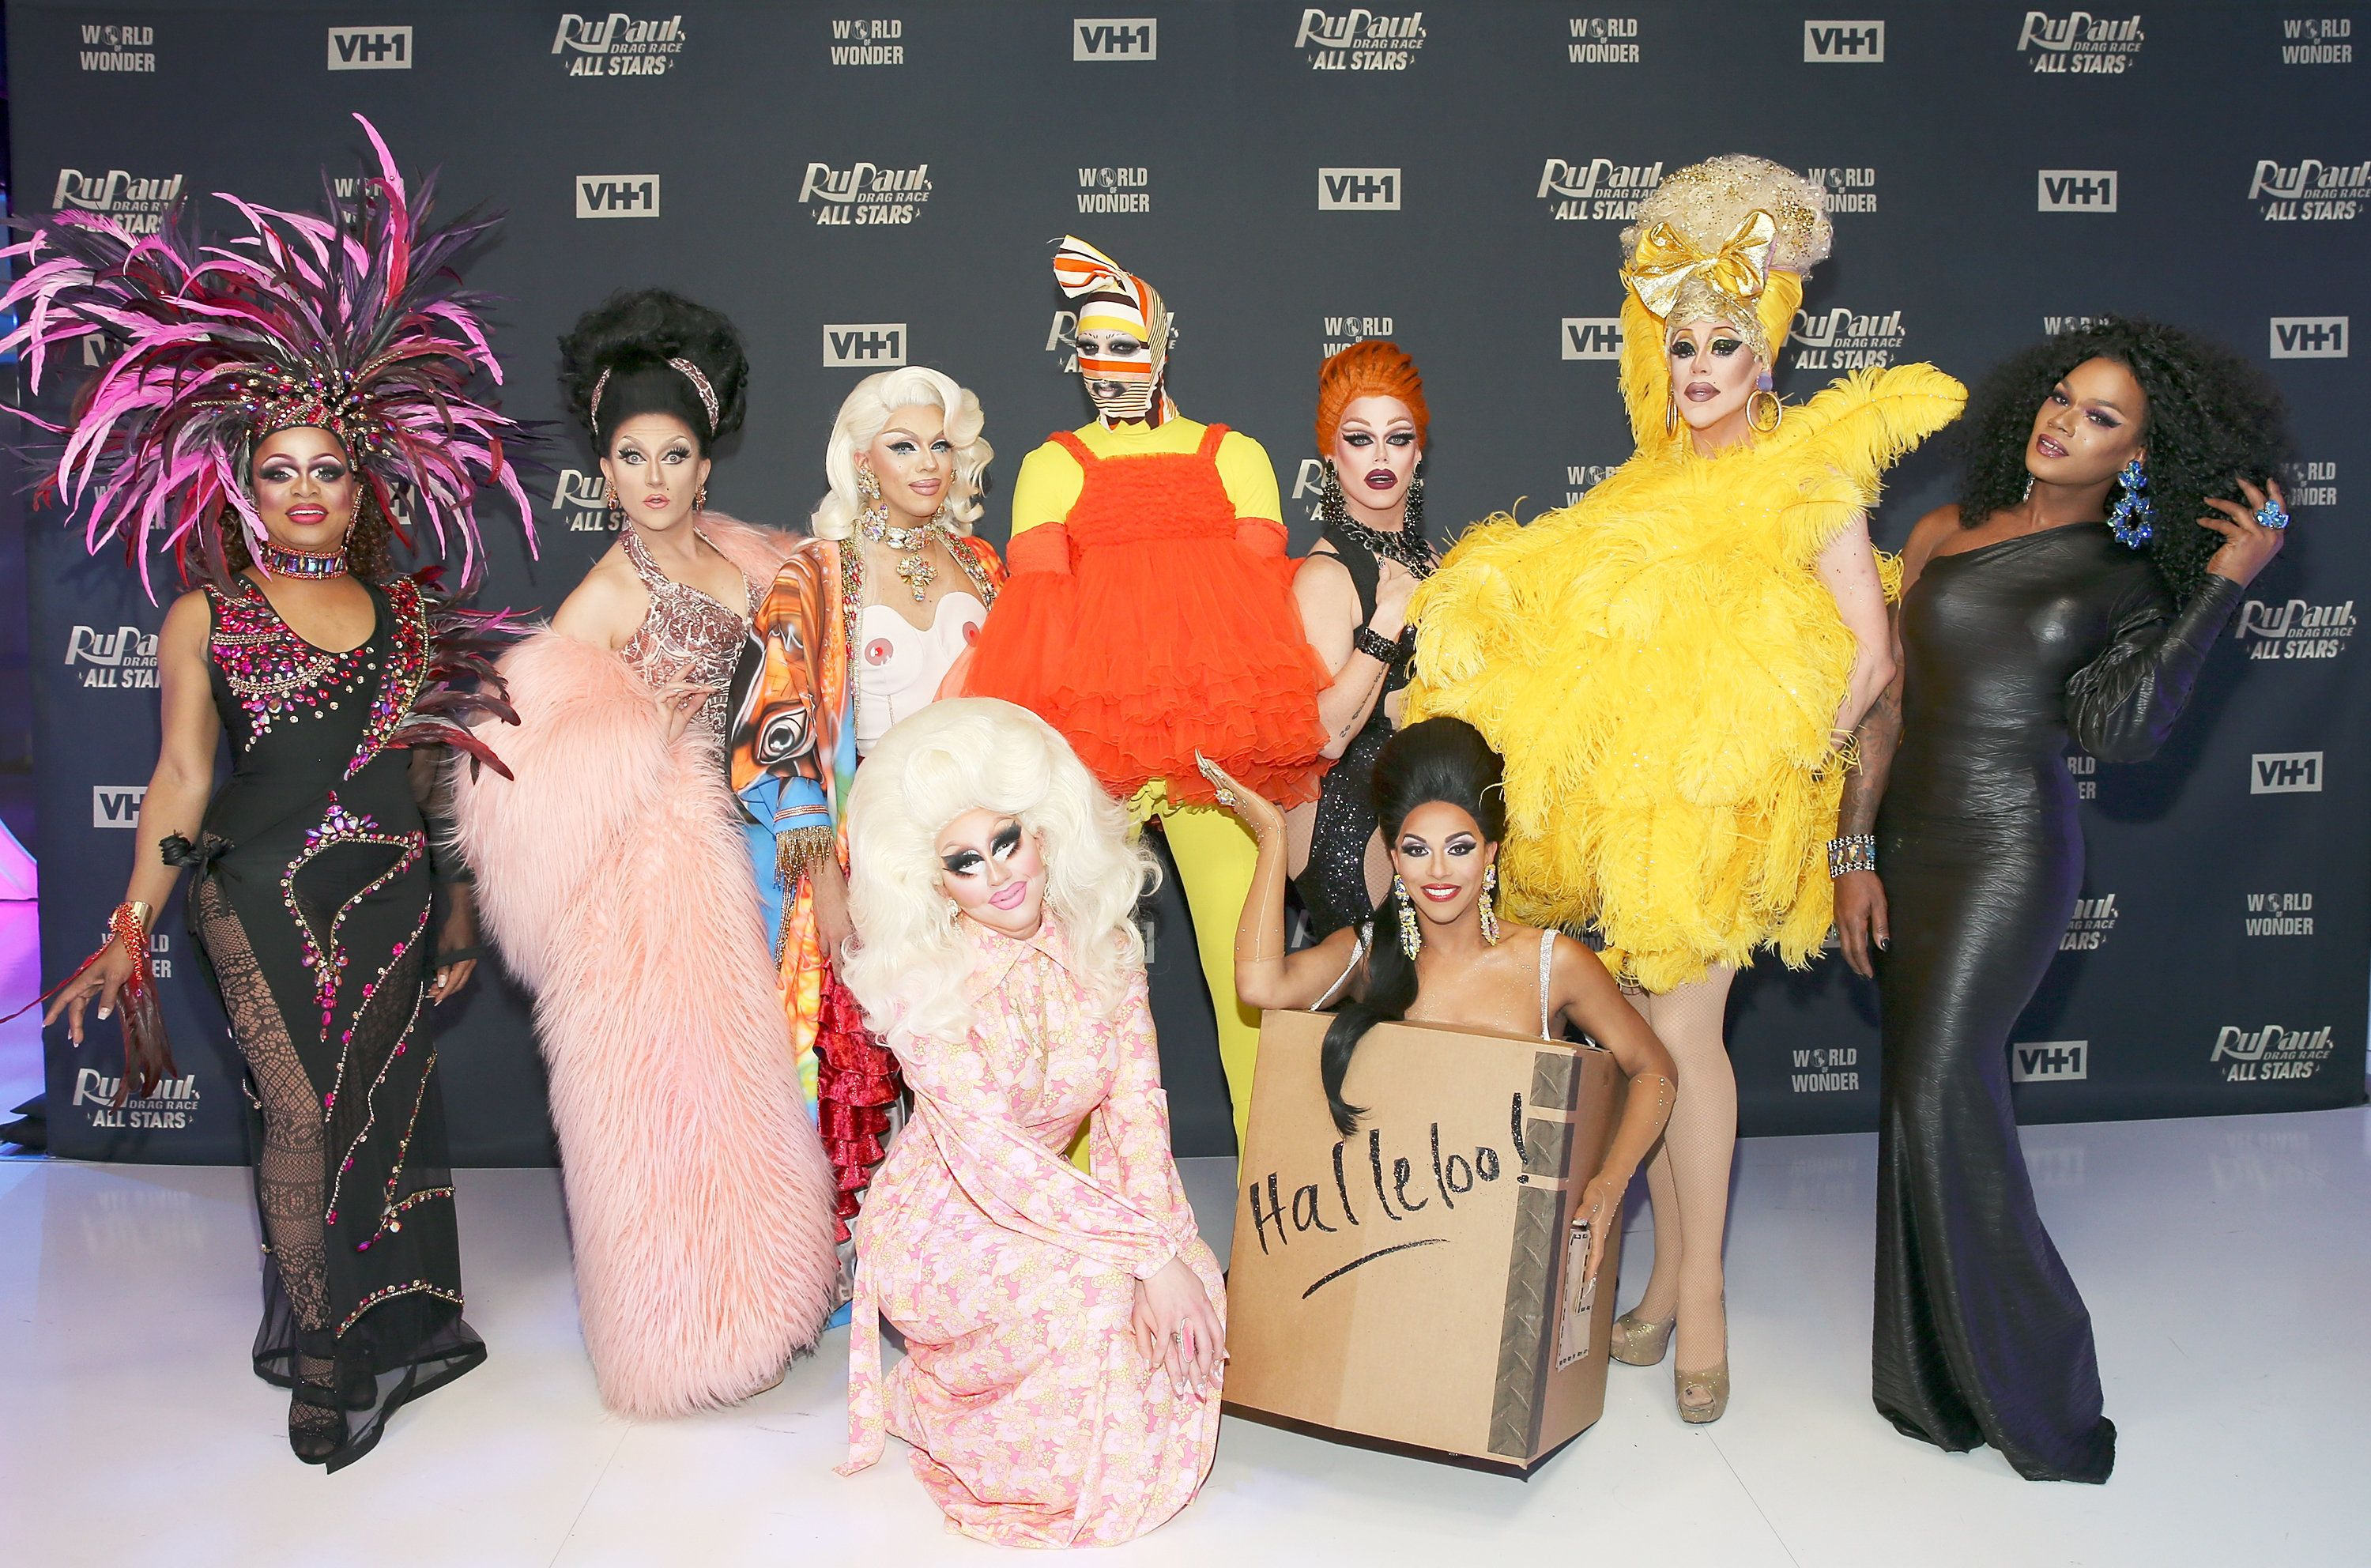 NEW YORK, NY - JANUARY 17:  Contestants (L- R) Kennedy Davenport, BenDeLaCreme, Aja, Trixie Mattel, Milk, Shagela, Morgan McMichaels, Thorgy Thor, and Chi Chi DeVayne attend  'RuPaul's Drag Race All Stars' Meet The Queens on January 17, 2018 in New York City.  (Photo by Bennett Raglin/Getty Images)